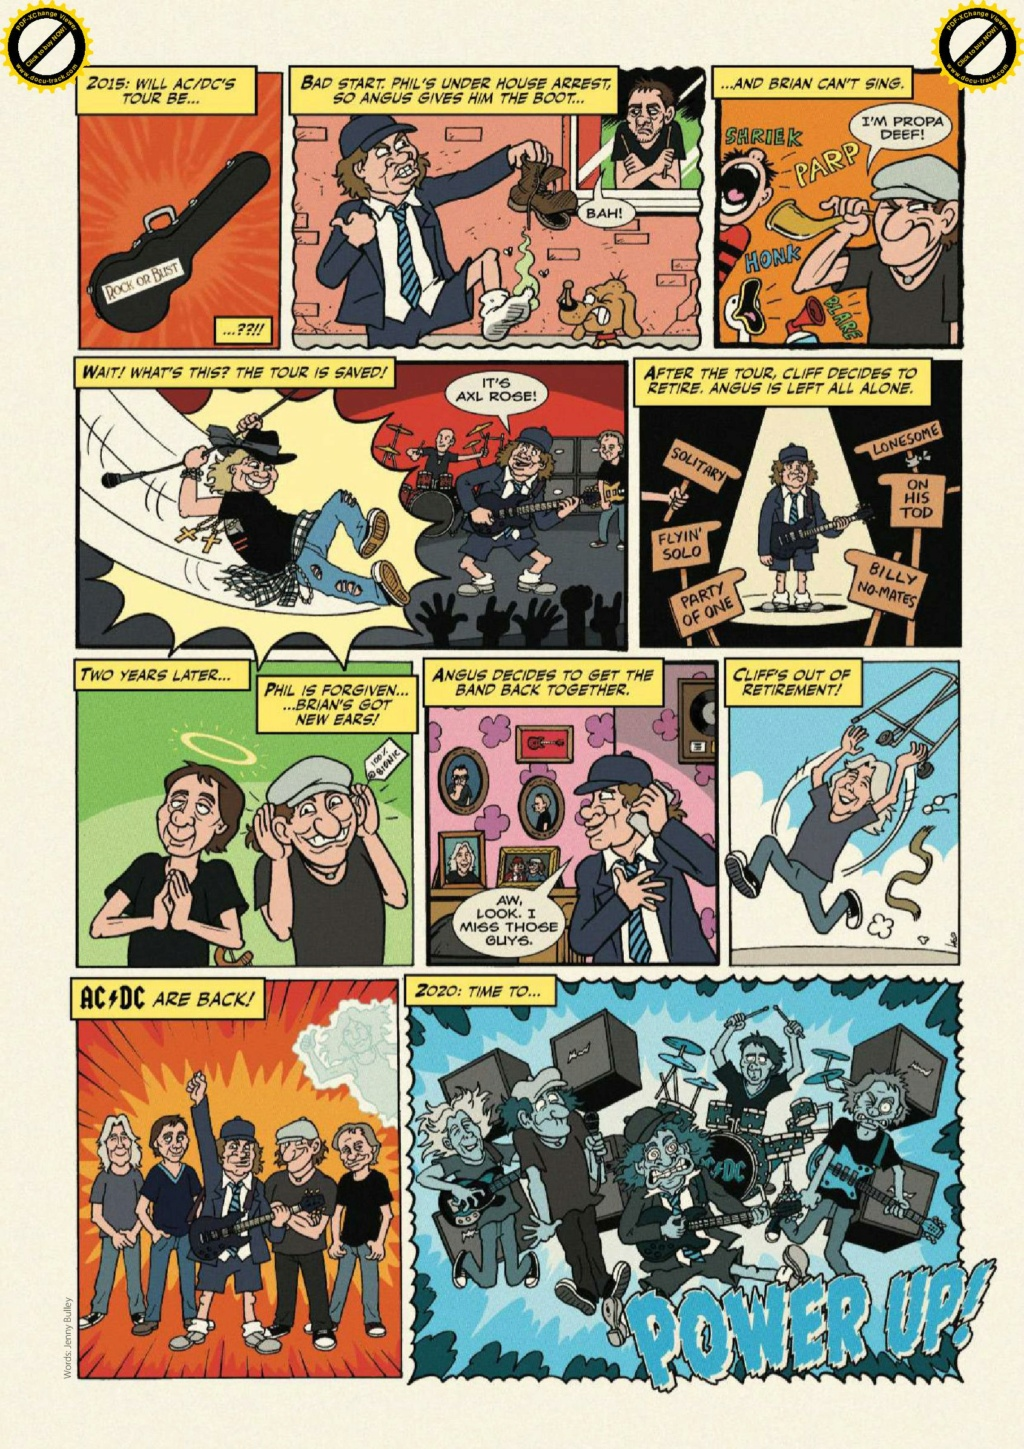 ACDC Power Up (2020) Hard-Rock Australie - Page 3 Acdc-p10